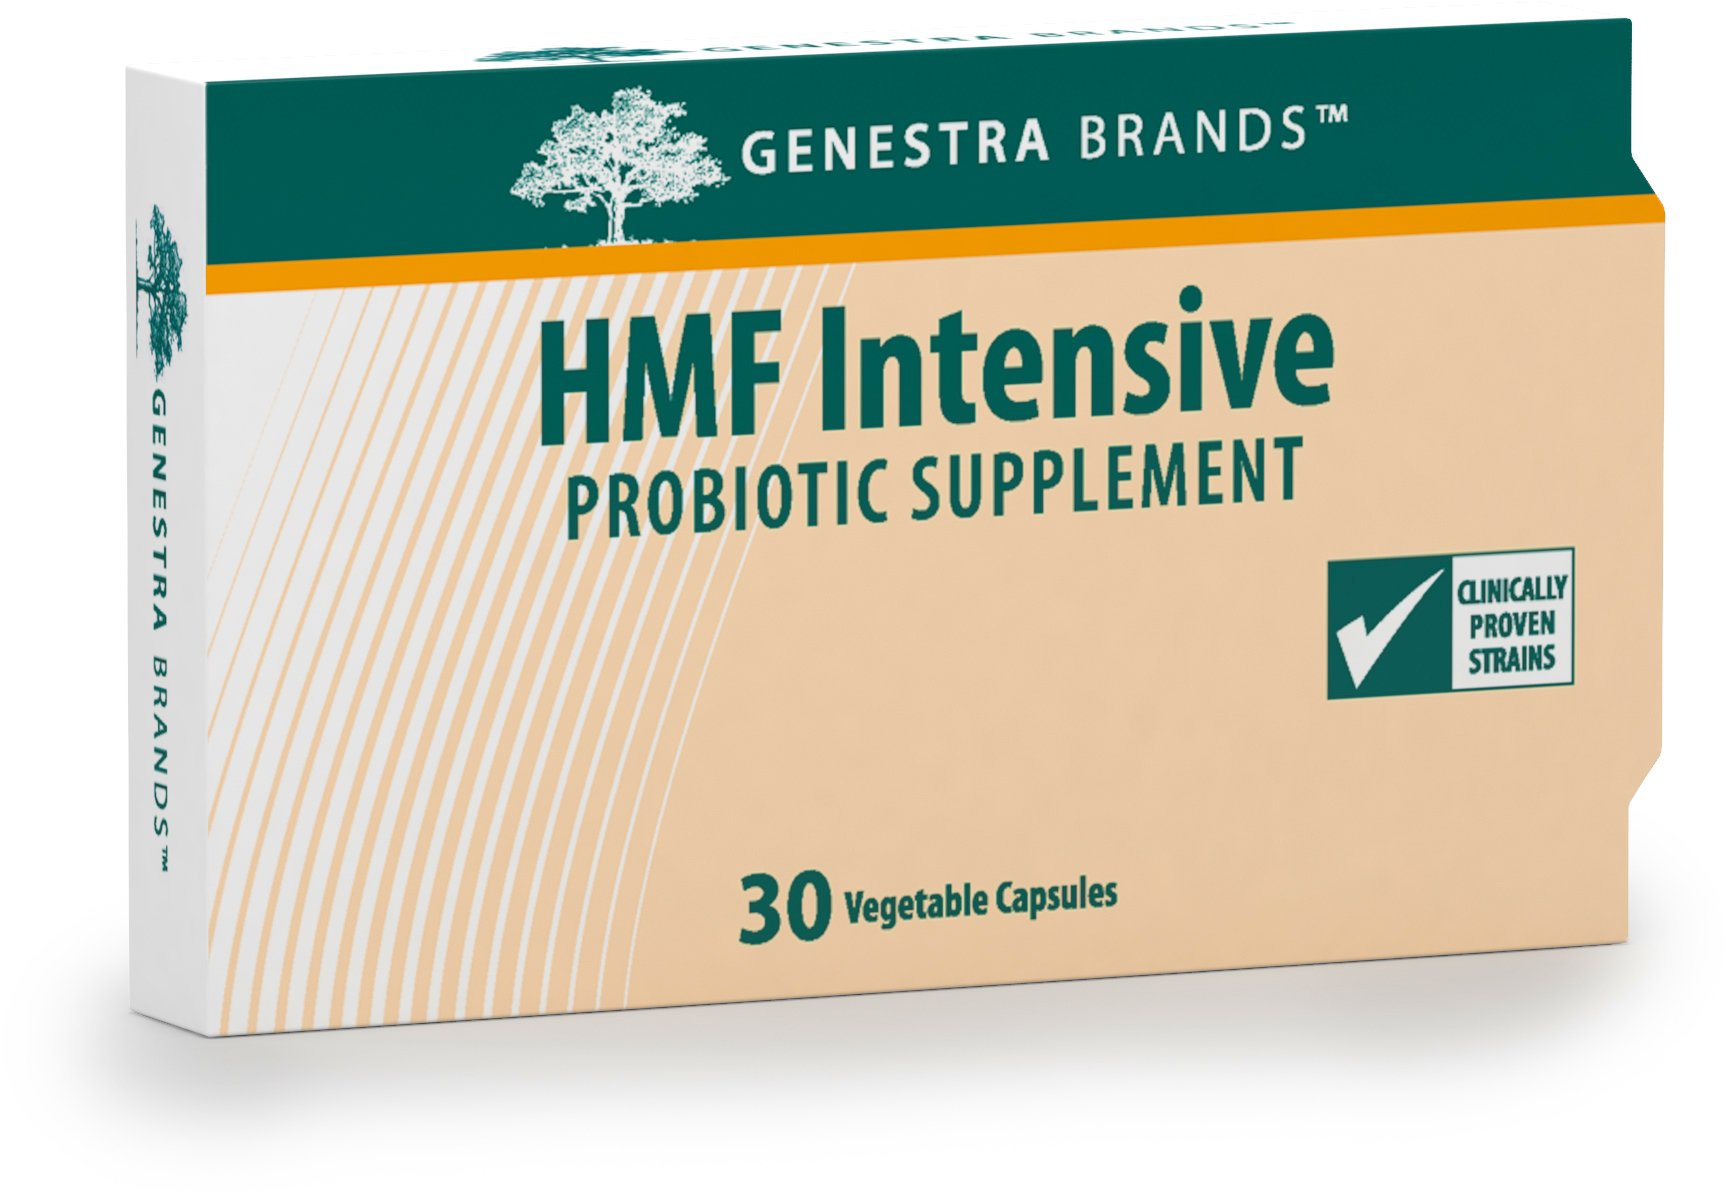 Genestra Brands - HMF Intensive - Four Strains of Probiotics to Promote GI Health* - 30 Capsules